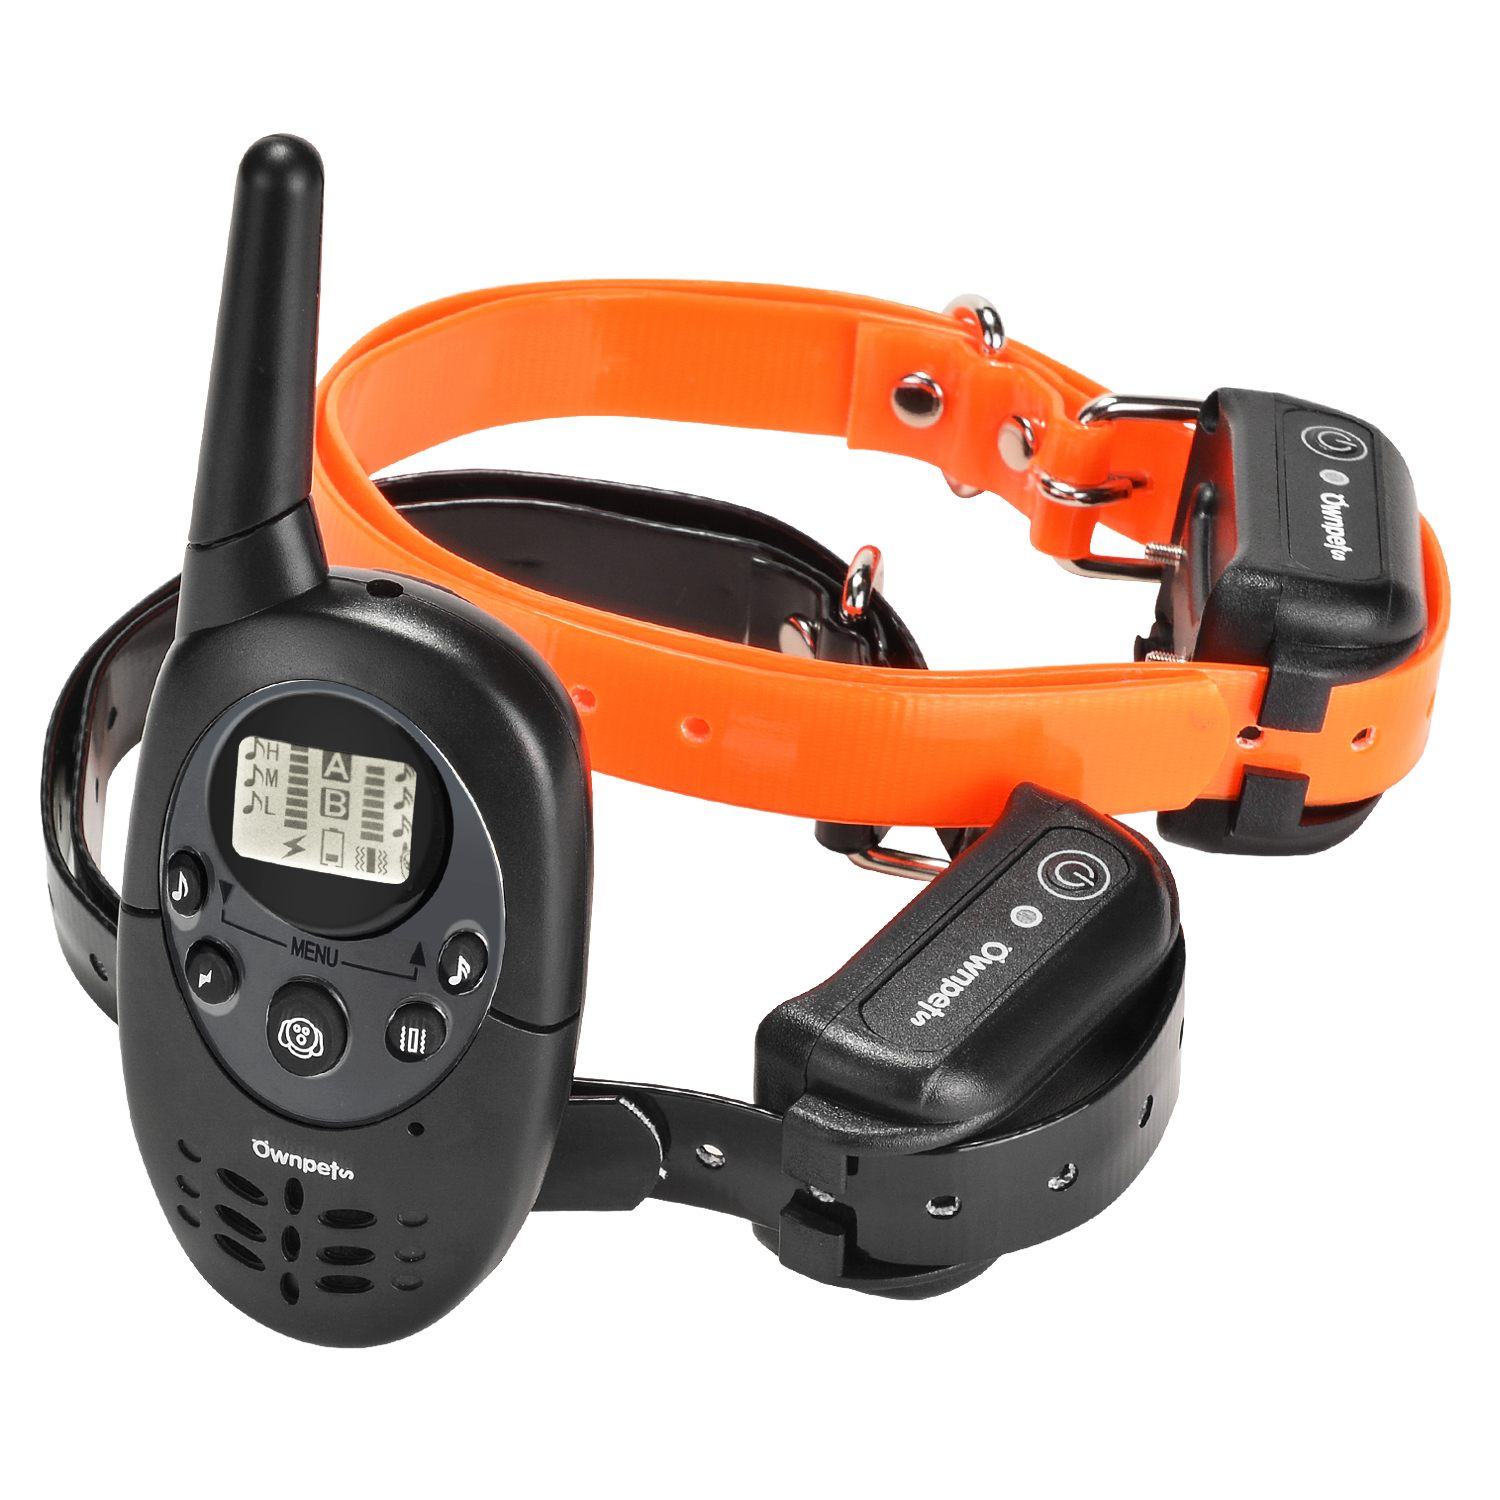 Ownpets Remote Dog Training Collar, Reable and 100% Waterproof Dog Shock Collar For All Size Dogs,600 yards Range